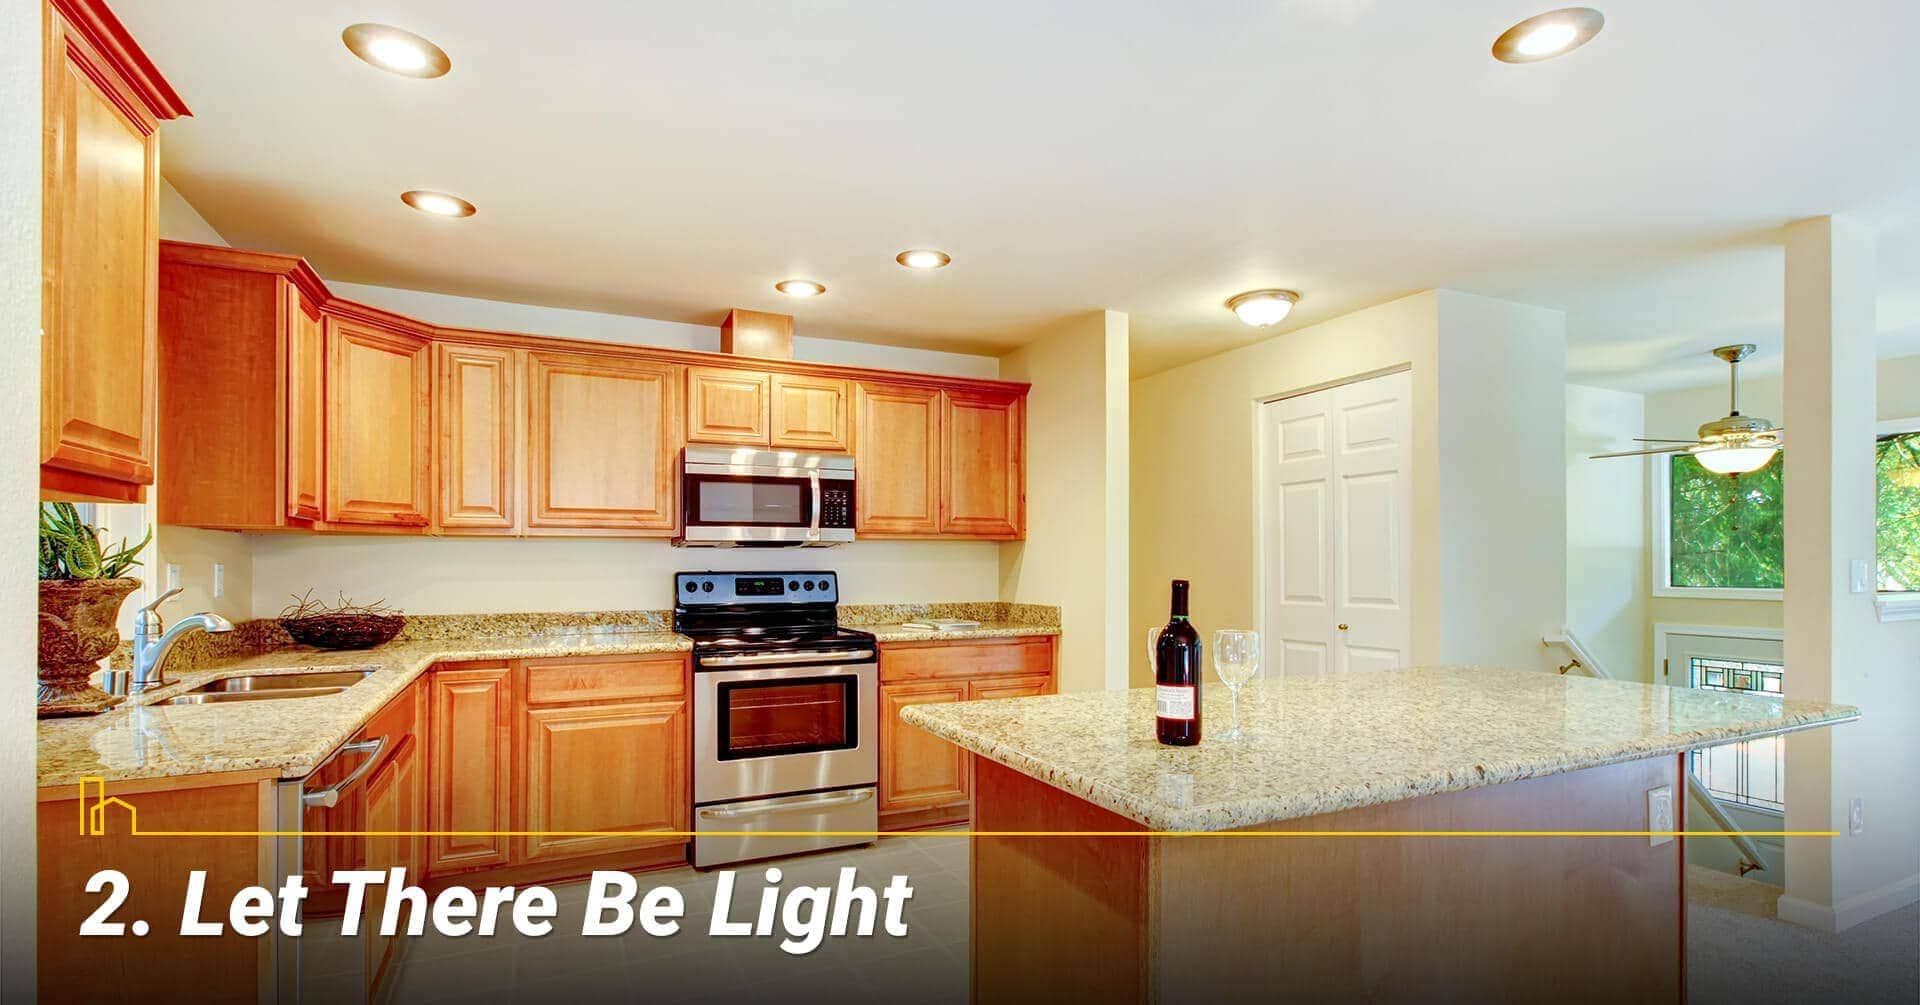 Let There Be Light, lighten up your kitchen